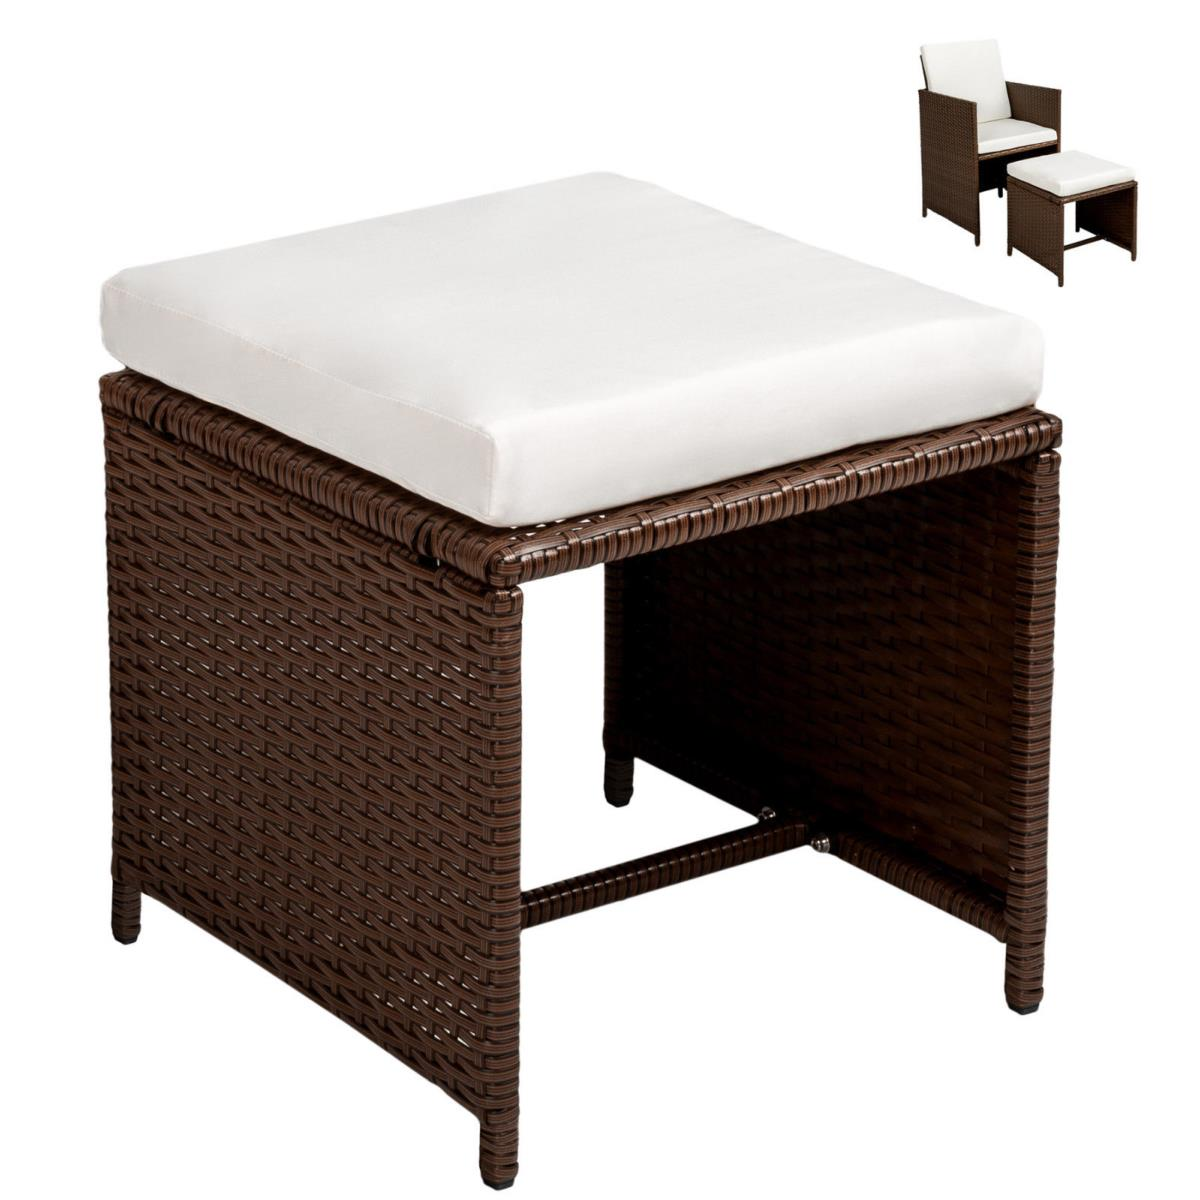 salon de jardin canap r sine tress e marron 10 personnes. Black Bedroom Furniture Sets. Home Design Ideas